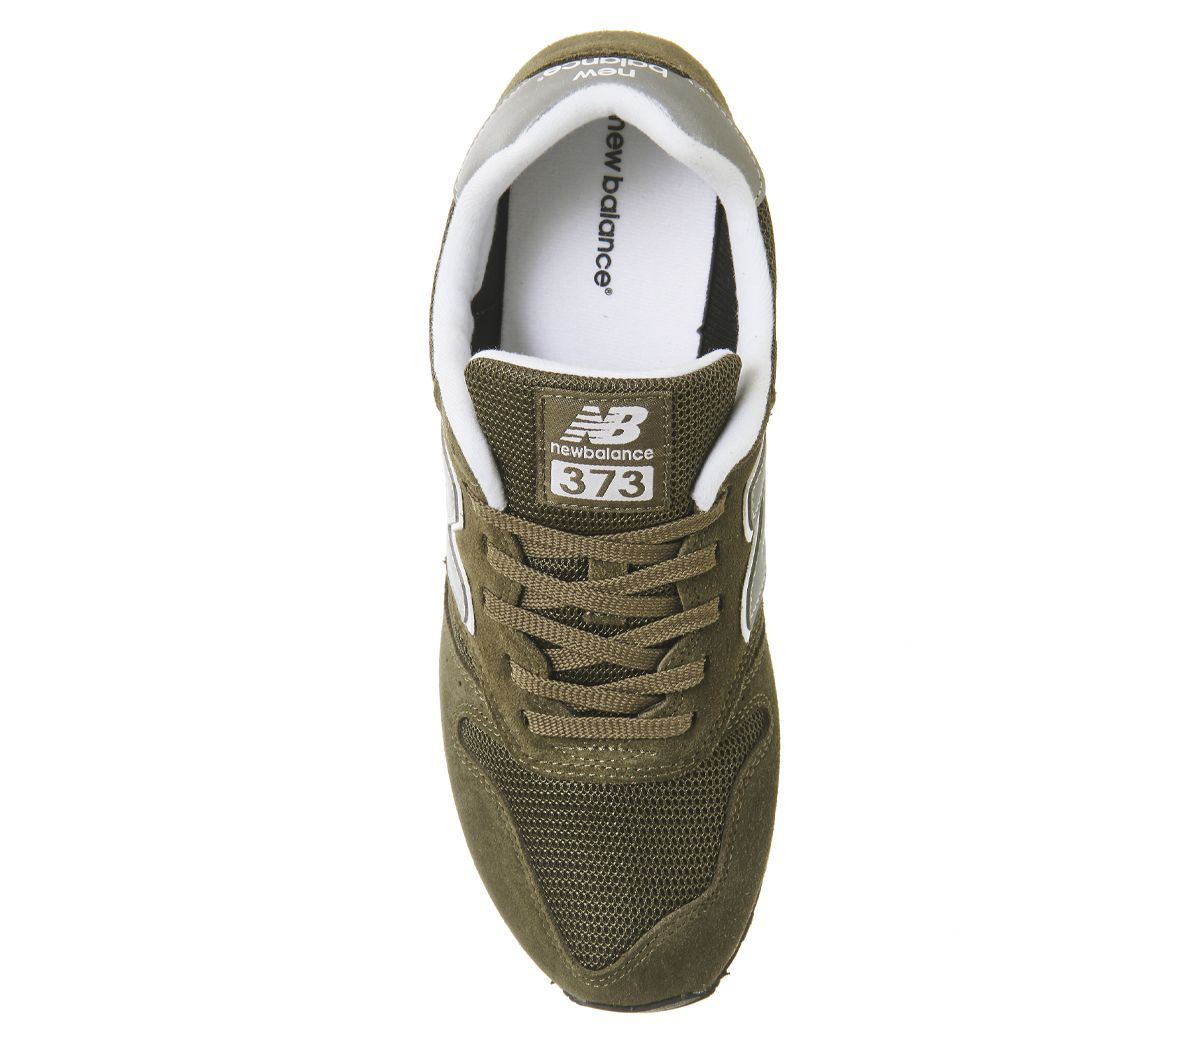 0db0b3594319a Double tap to zoom into the image. New Balance, 373, Olive Silver ...